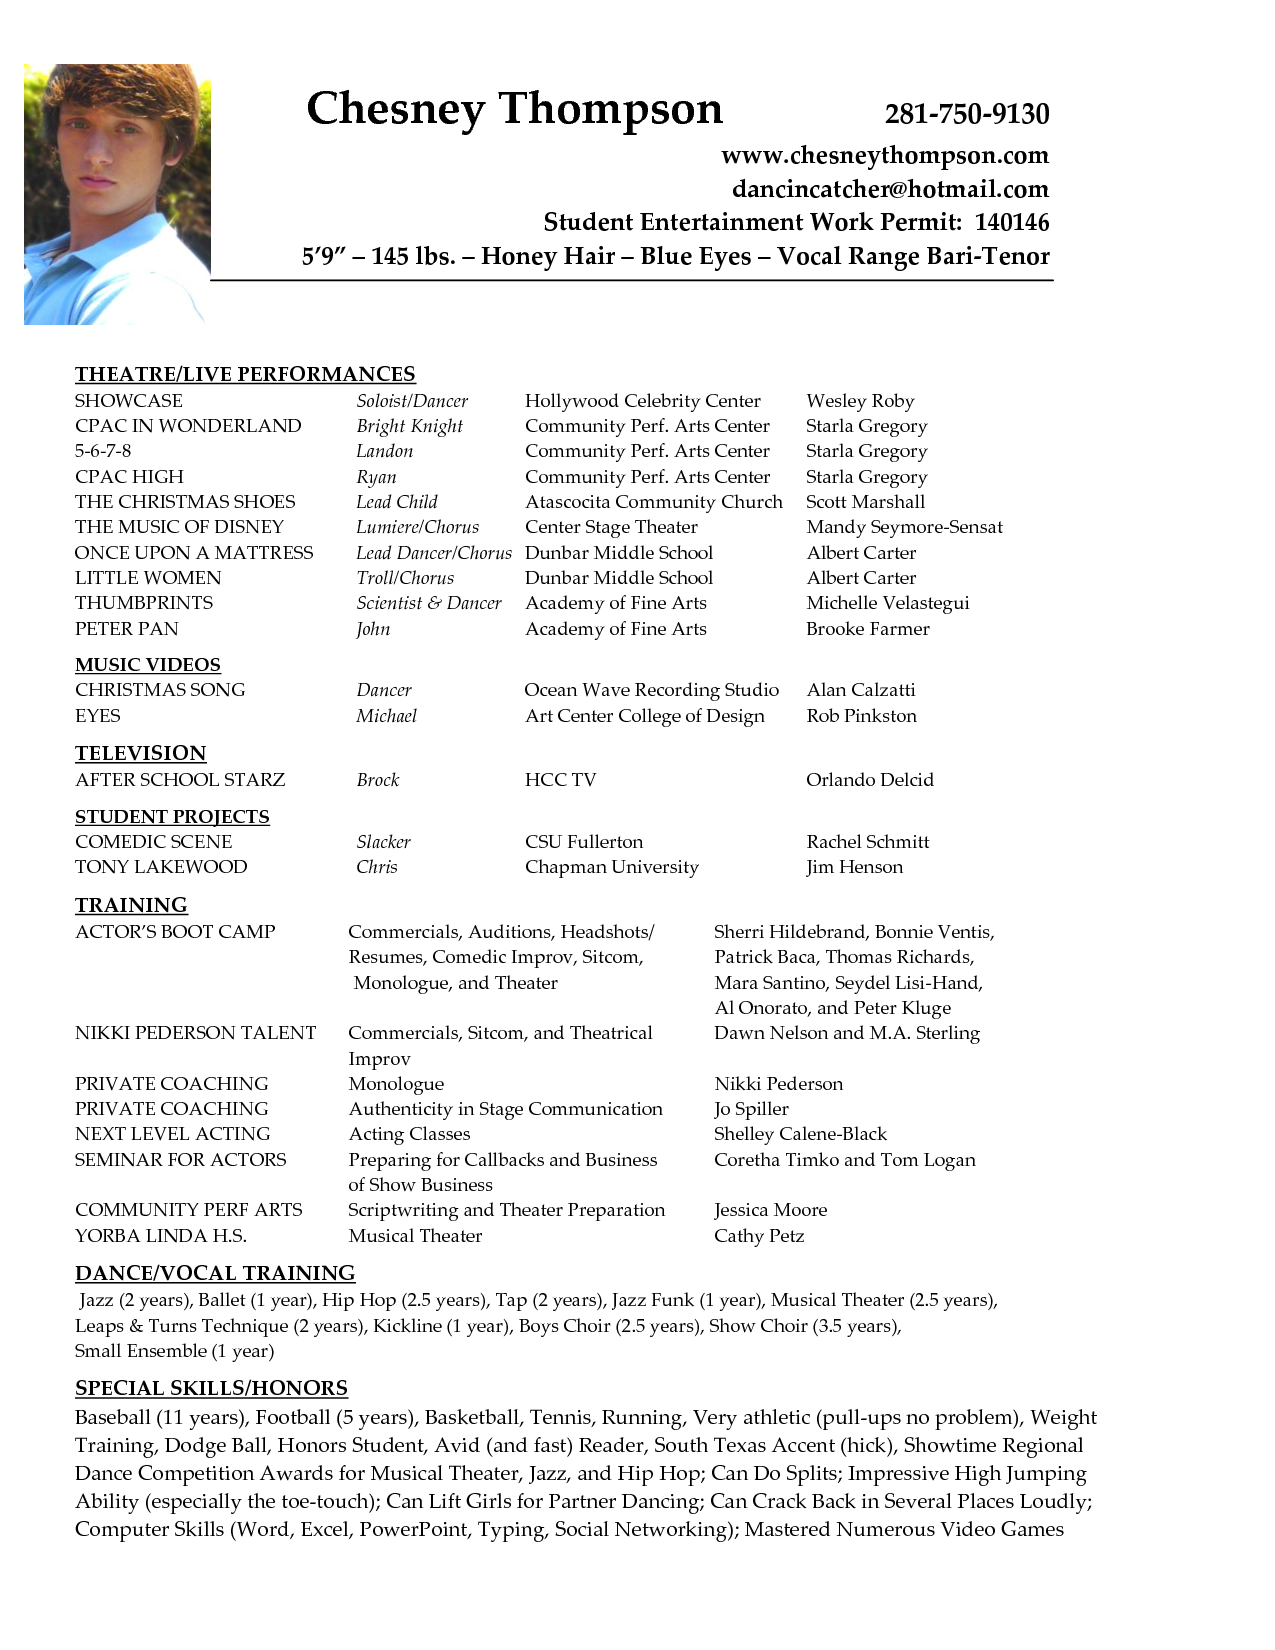 Beautiful Theatre Resume Template Builder Dfdqkmt Barb Jones Photography Sample Actor Intended For Actor Resume Template Word